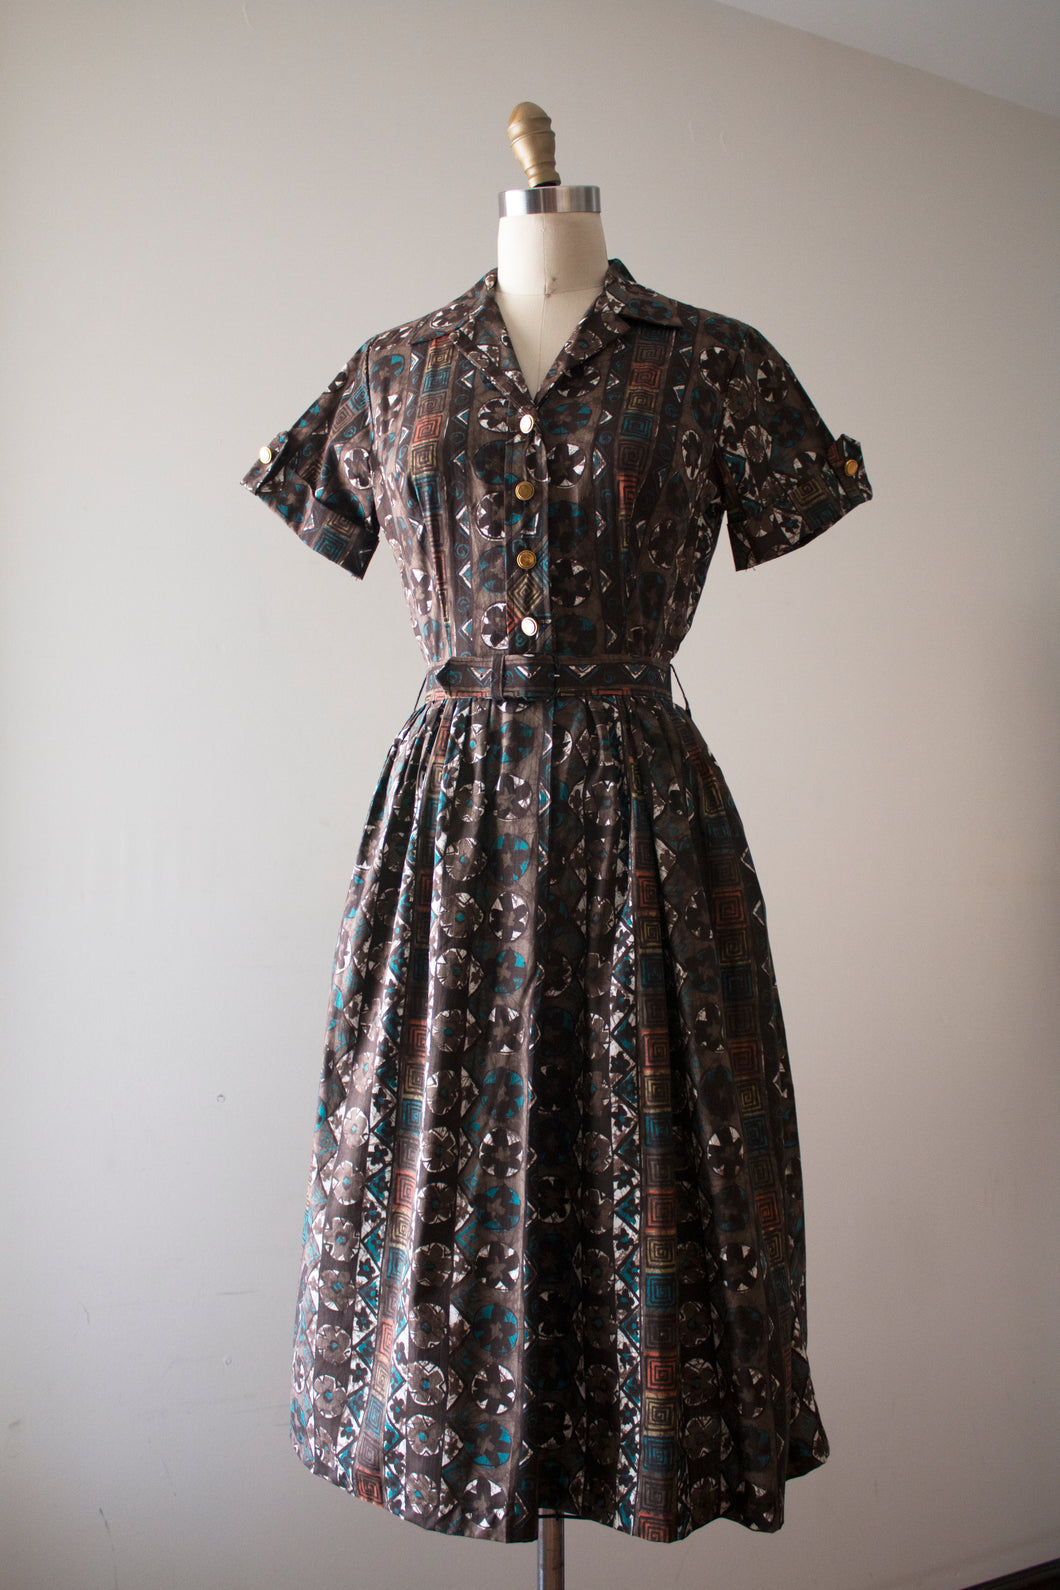 vintage 1950s shirtwaist dress with midcentury print